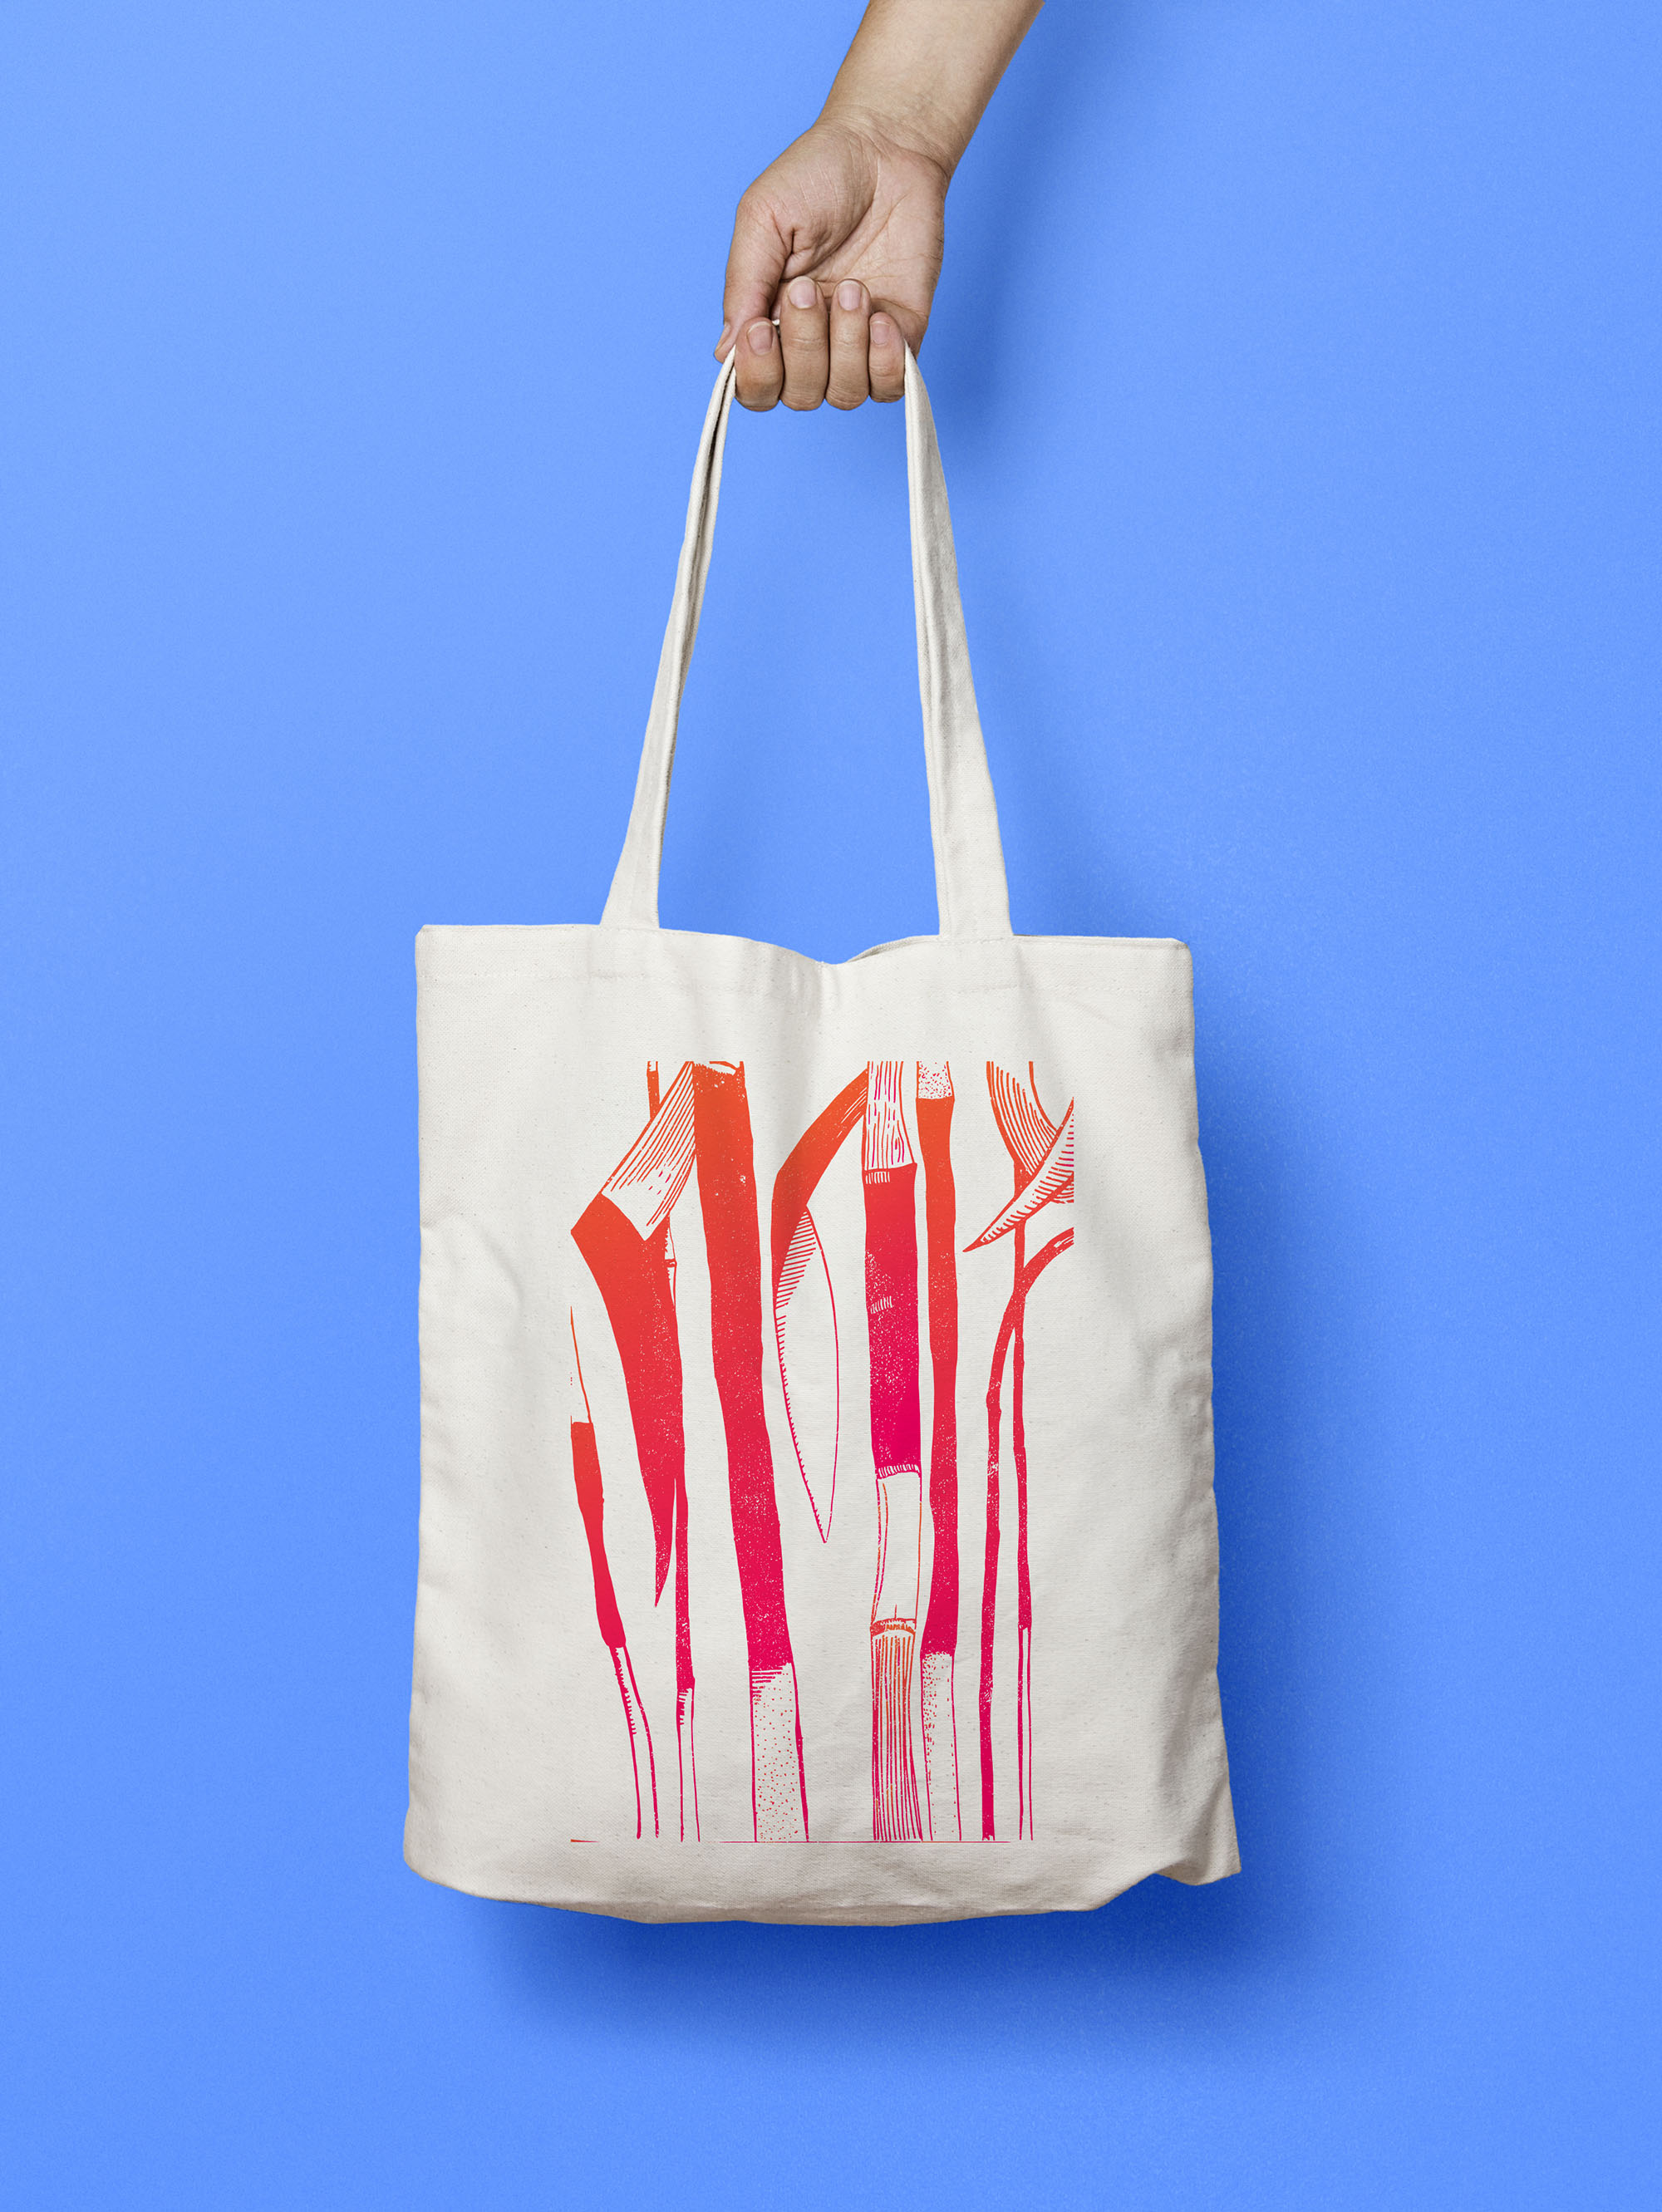 left TOTE-BAG-FESTIVAL-ILLUSTRATION-HANDMADE